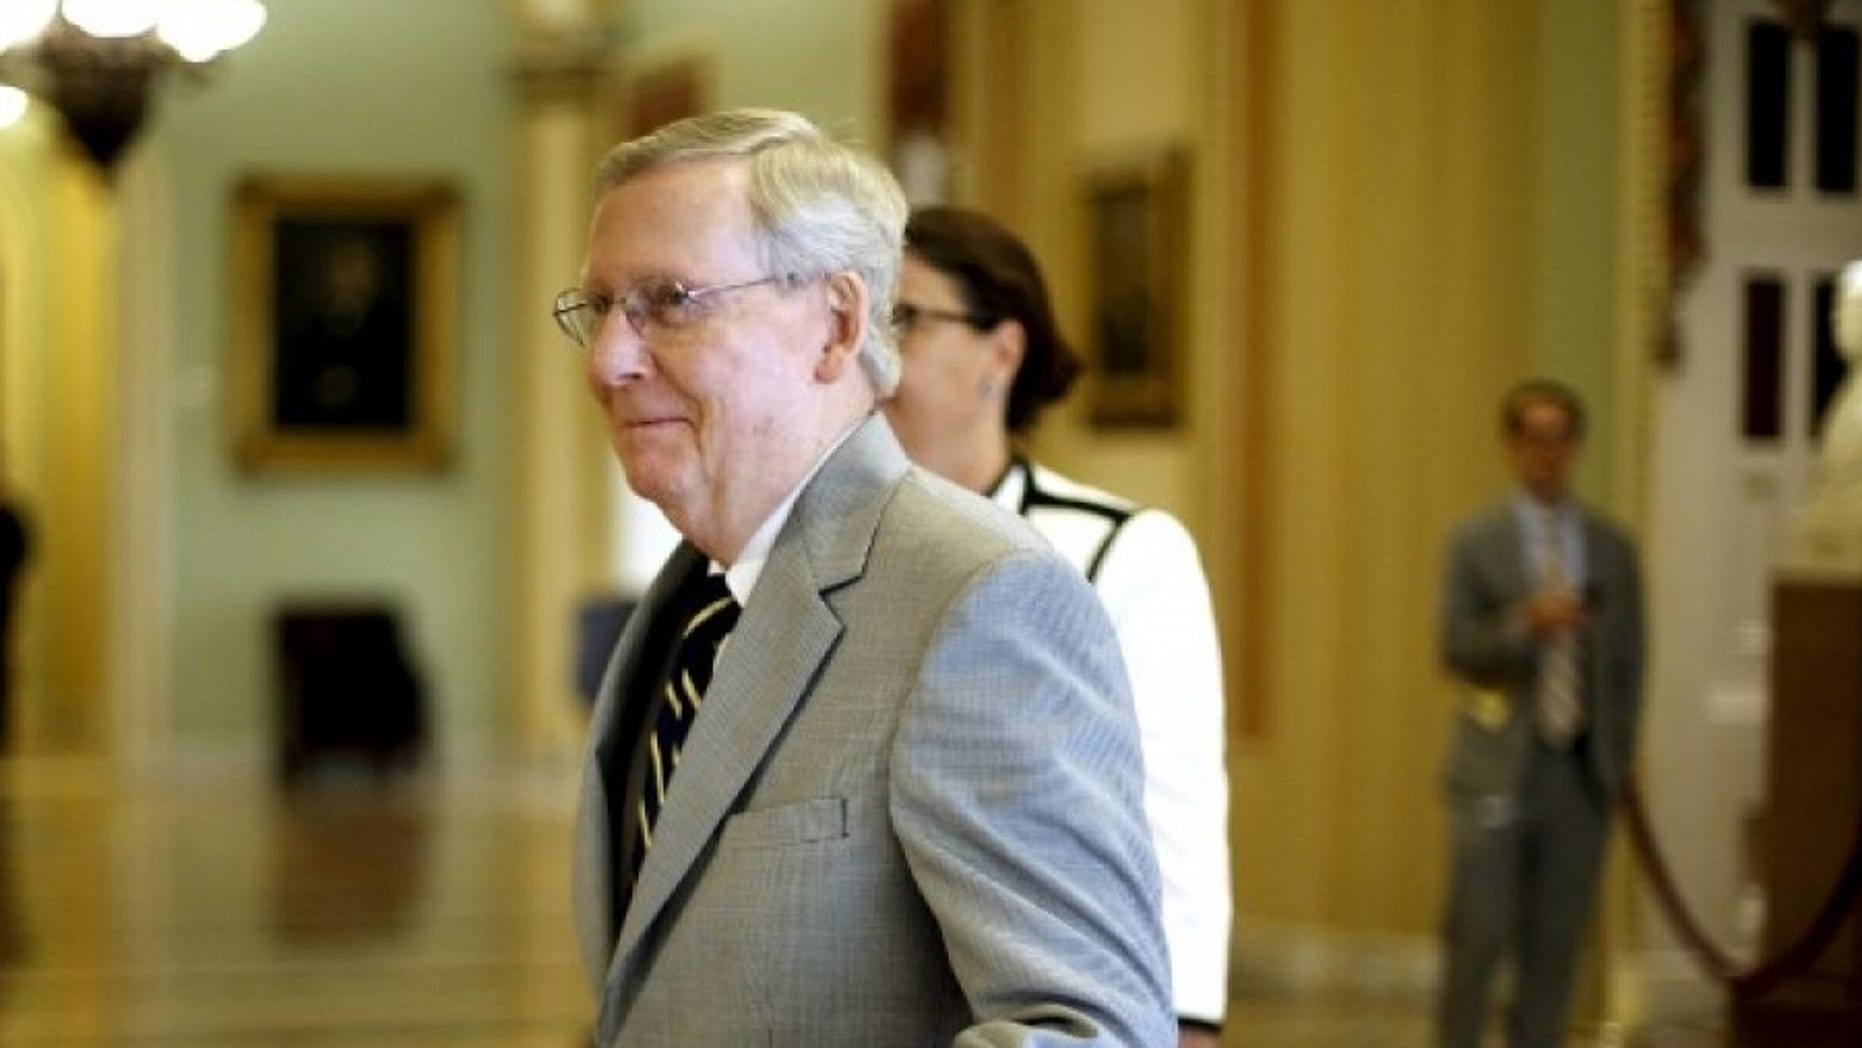 U.S. Senate Majority Leader Mitch McConnell (R-KY) gives a wave to staff members as he walks to the senate floor at the U.S. Capitol in Washington September 8, 2015.  REUTERS/Jonathan Ernst